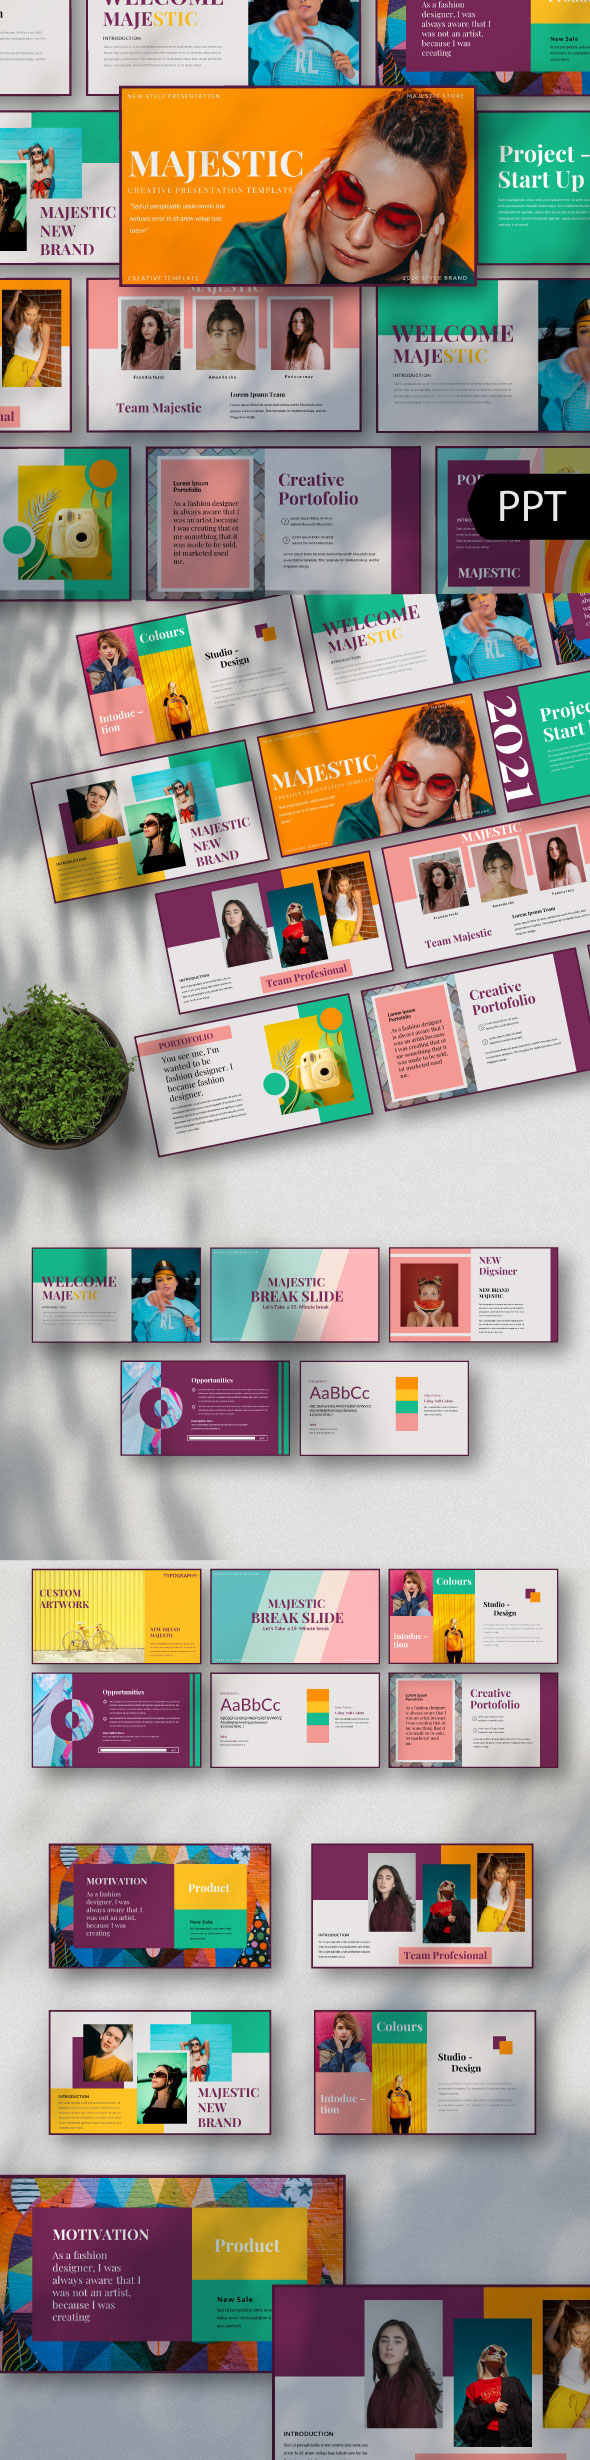 Majestic Creative Powerpoint Template